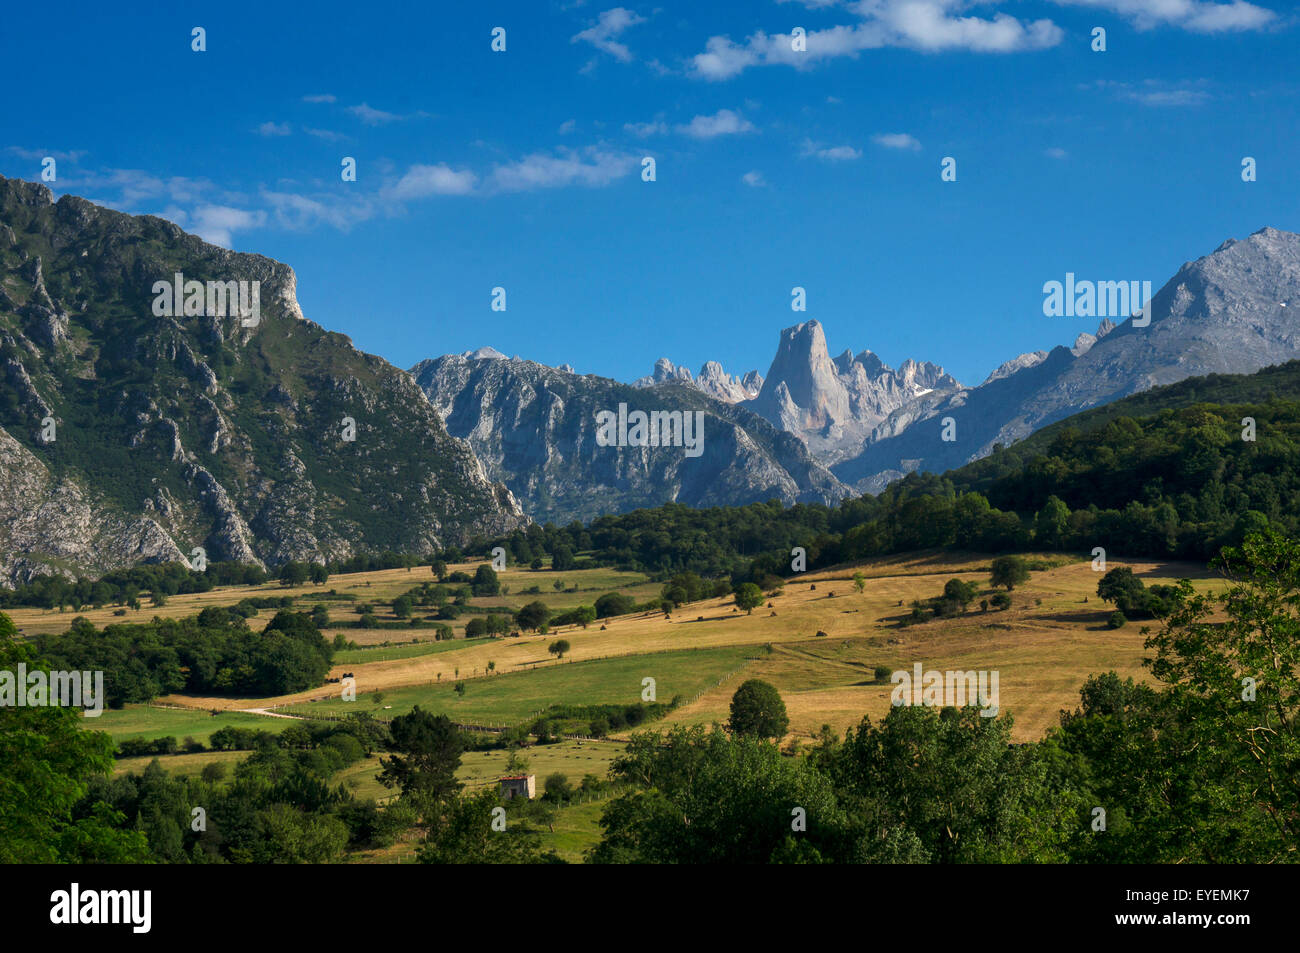 Picos de europa,Asturias,Northern Spain - Stock Image